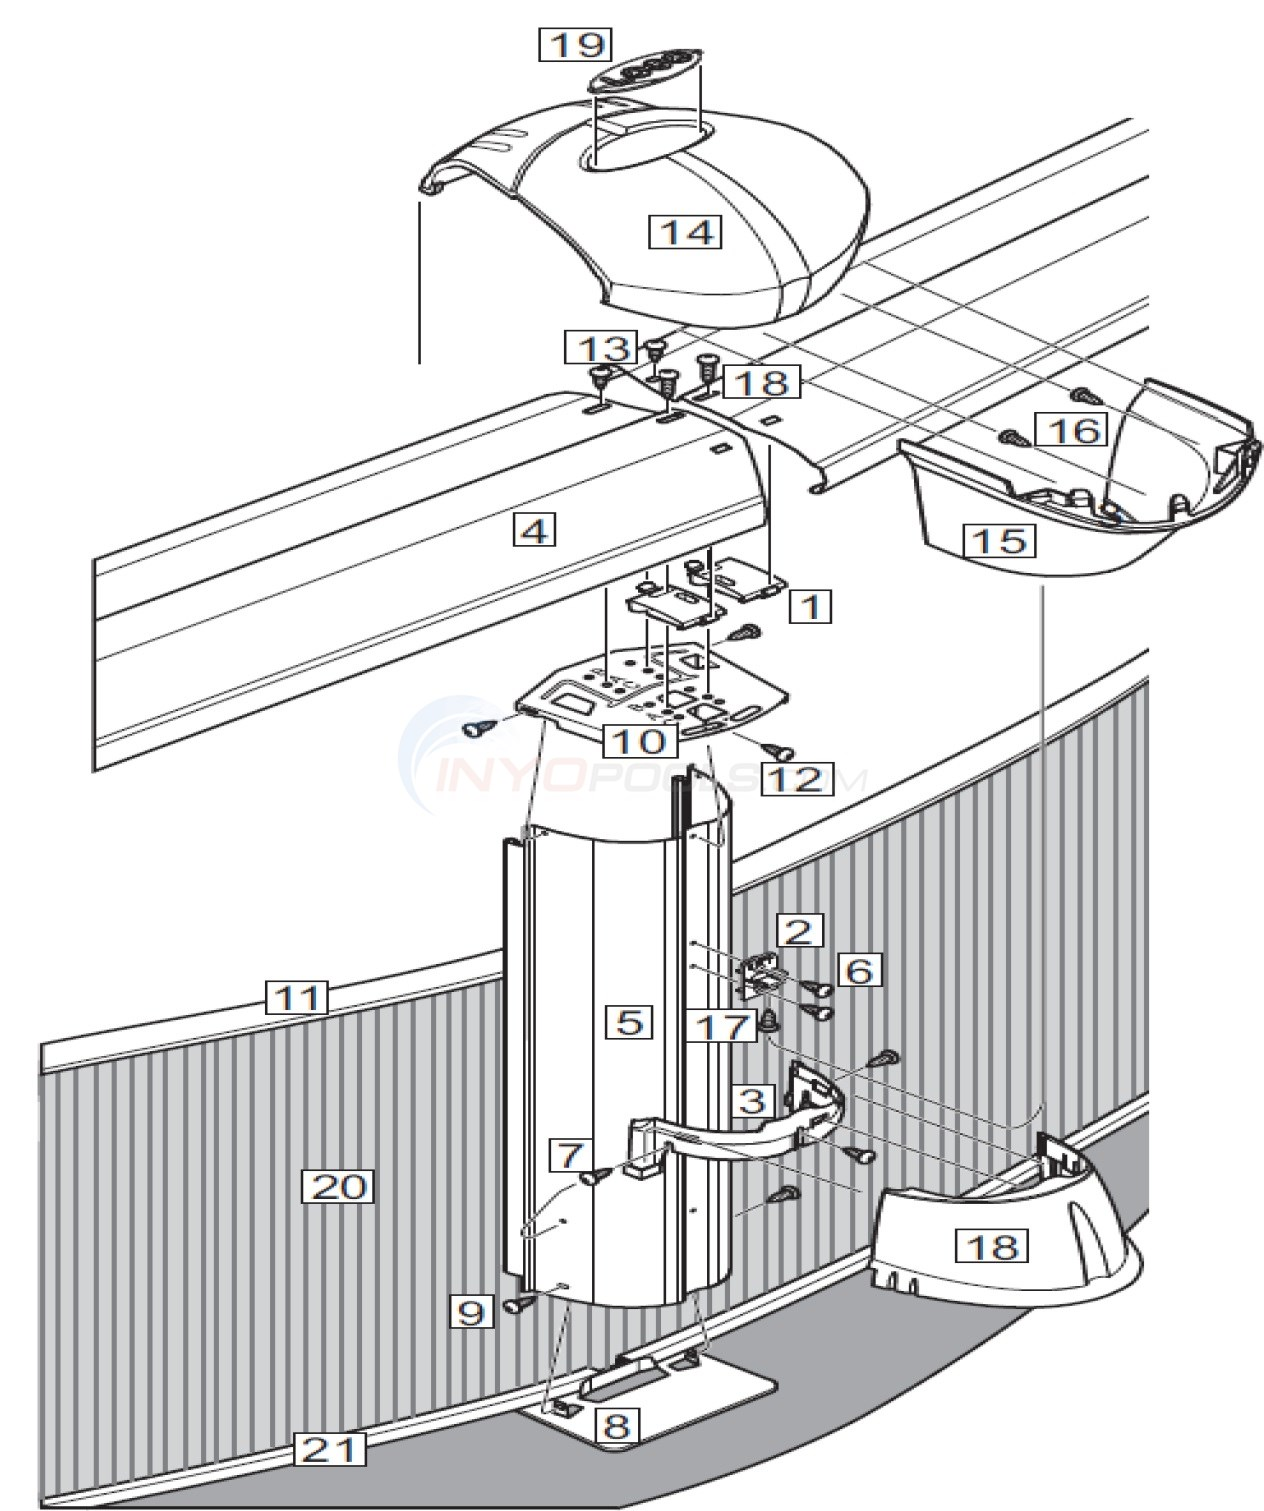 "J5000 Mist 15' Round 52"" Wall (Steel Top Rail, Steel Upright) Diagram"